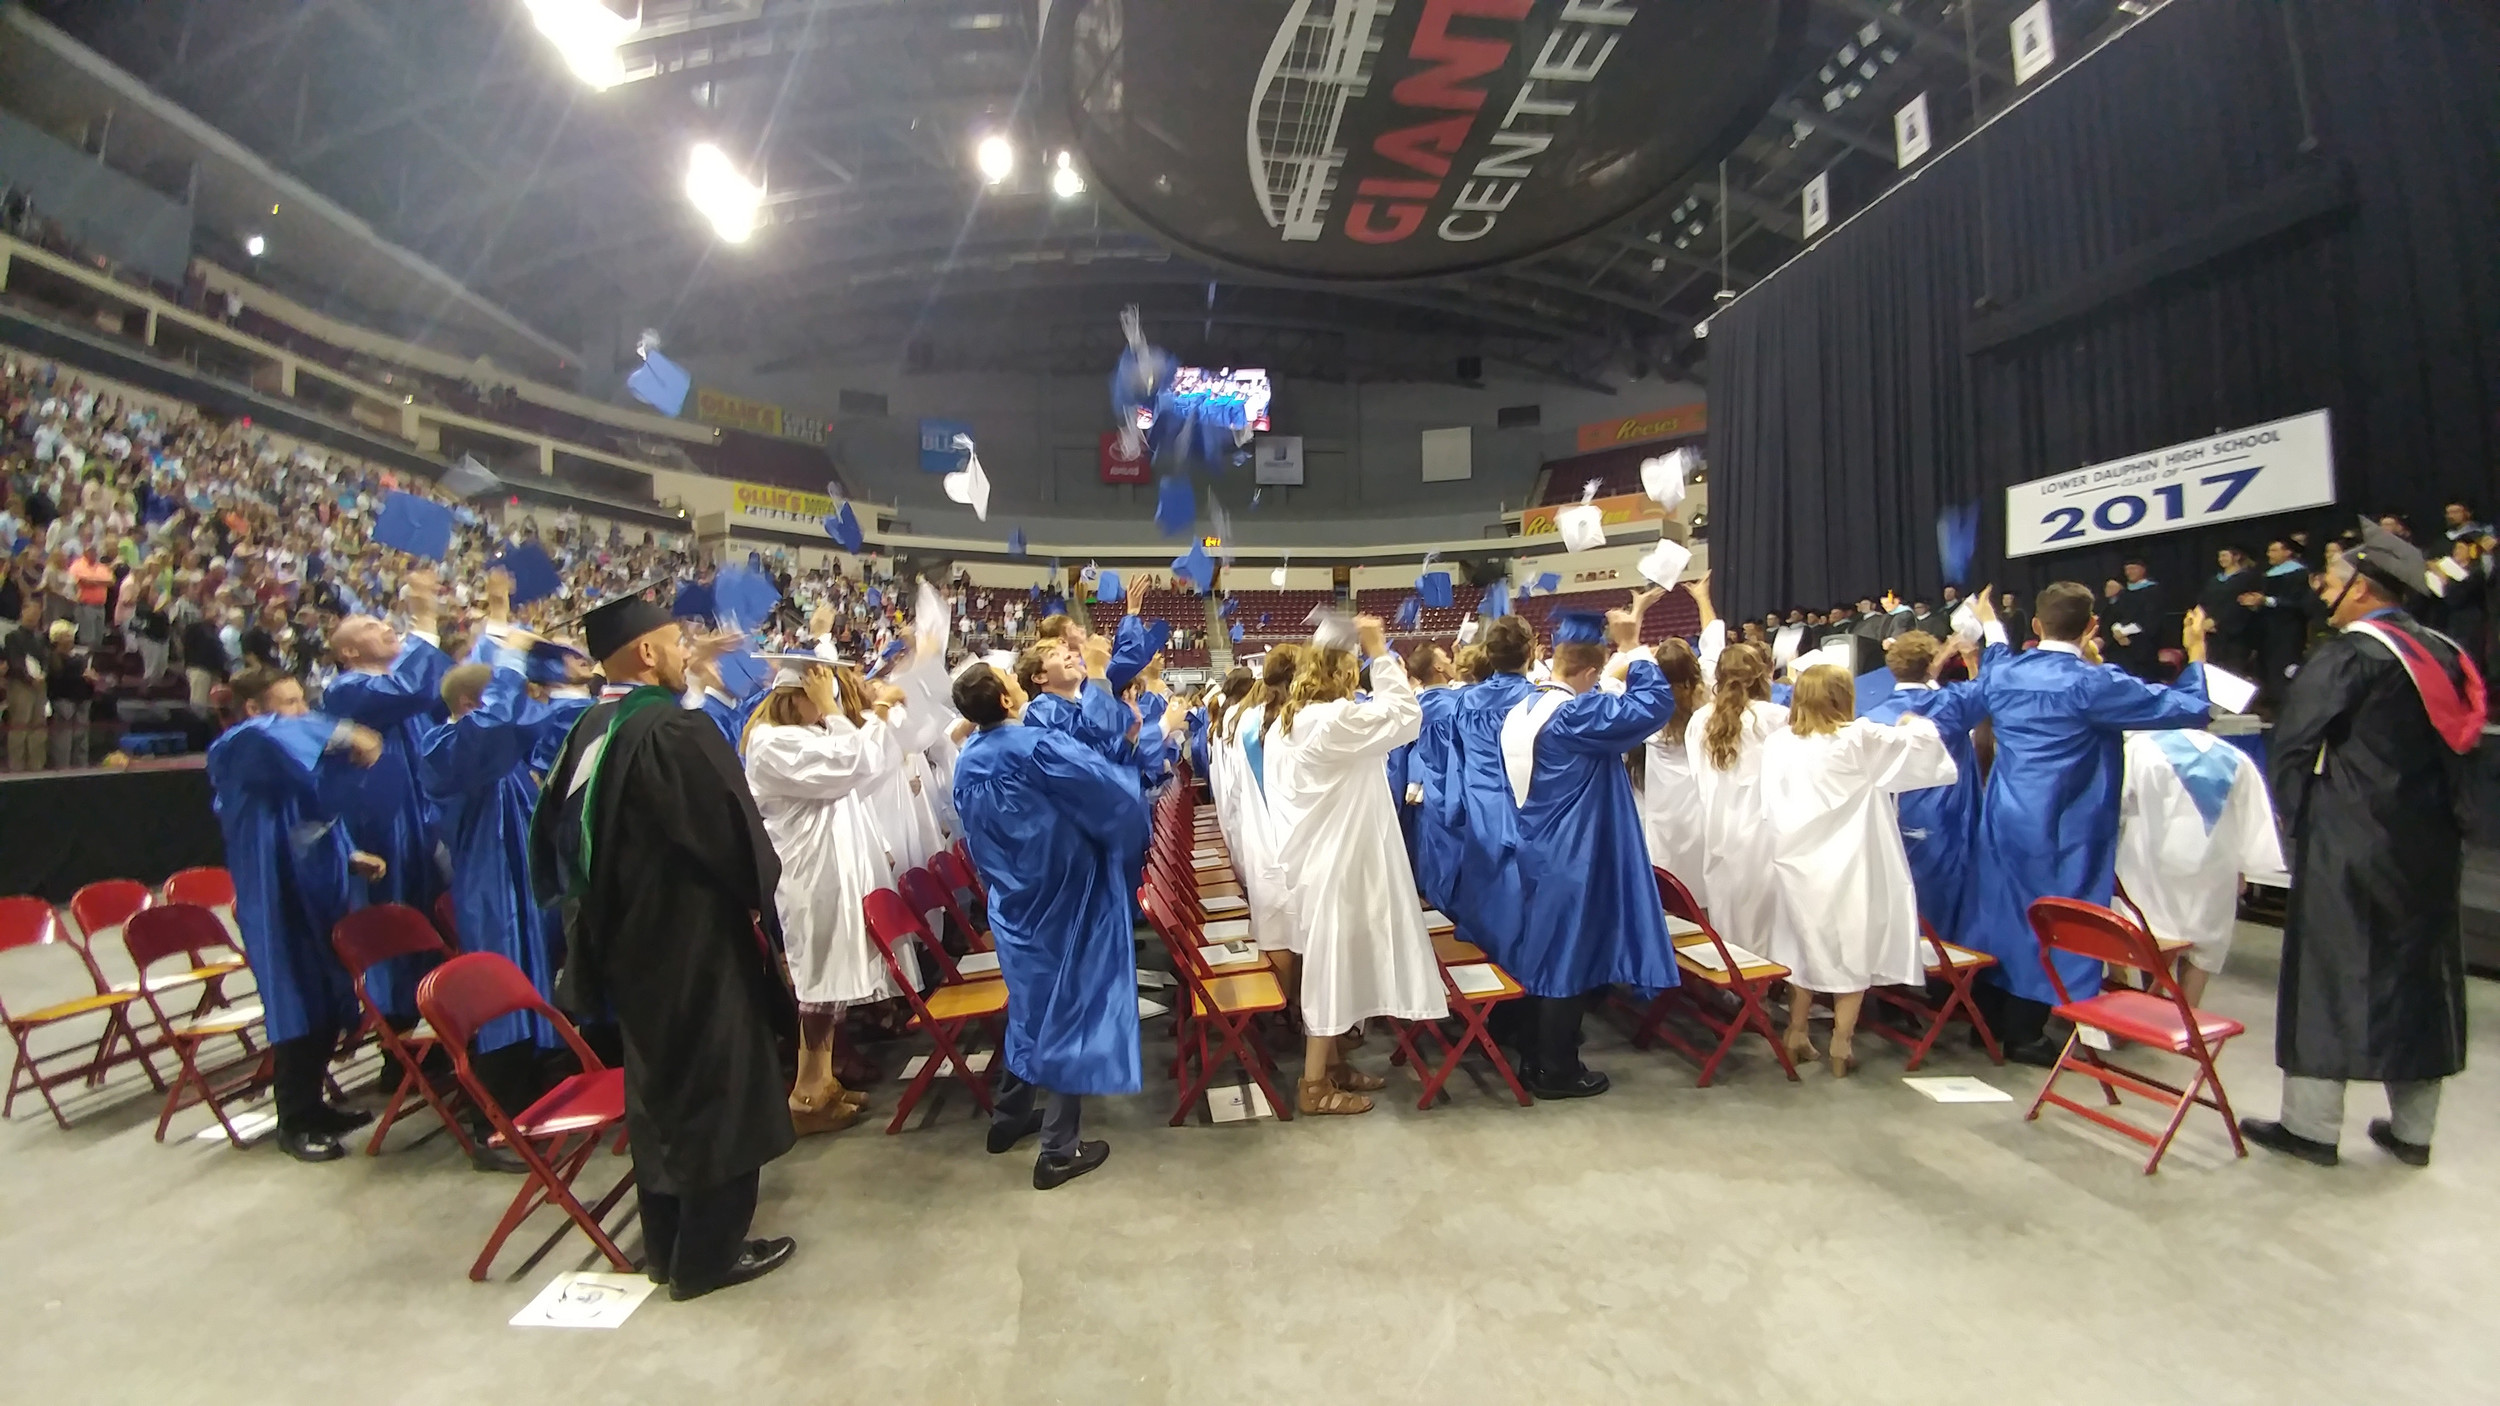 The Lower Dauphin Class of 2017 celebrates their accomplishment with a cap-tossing gesture.